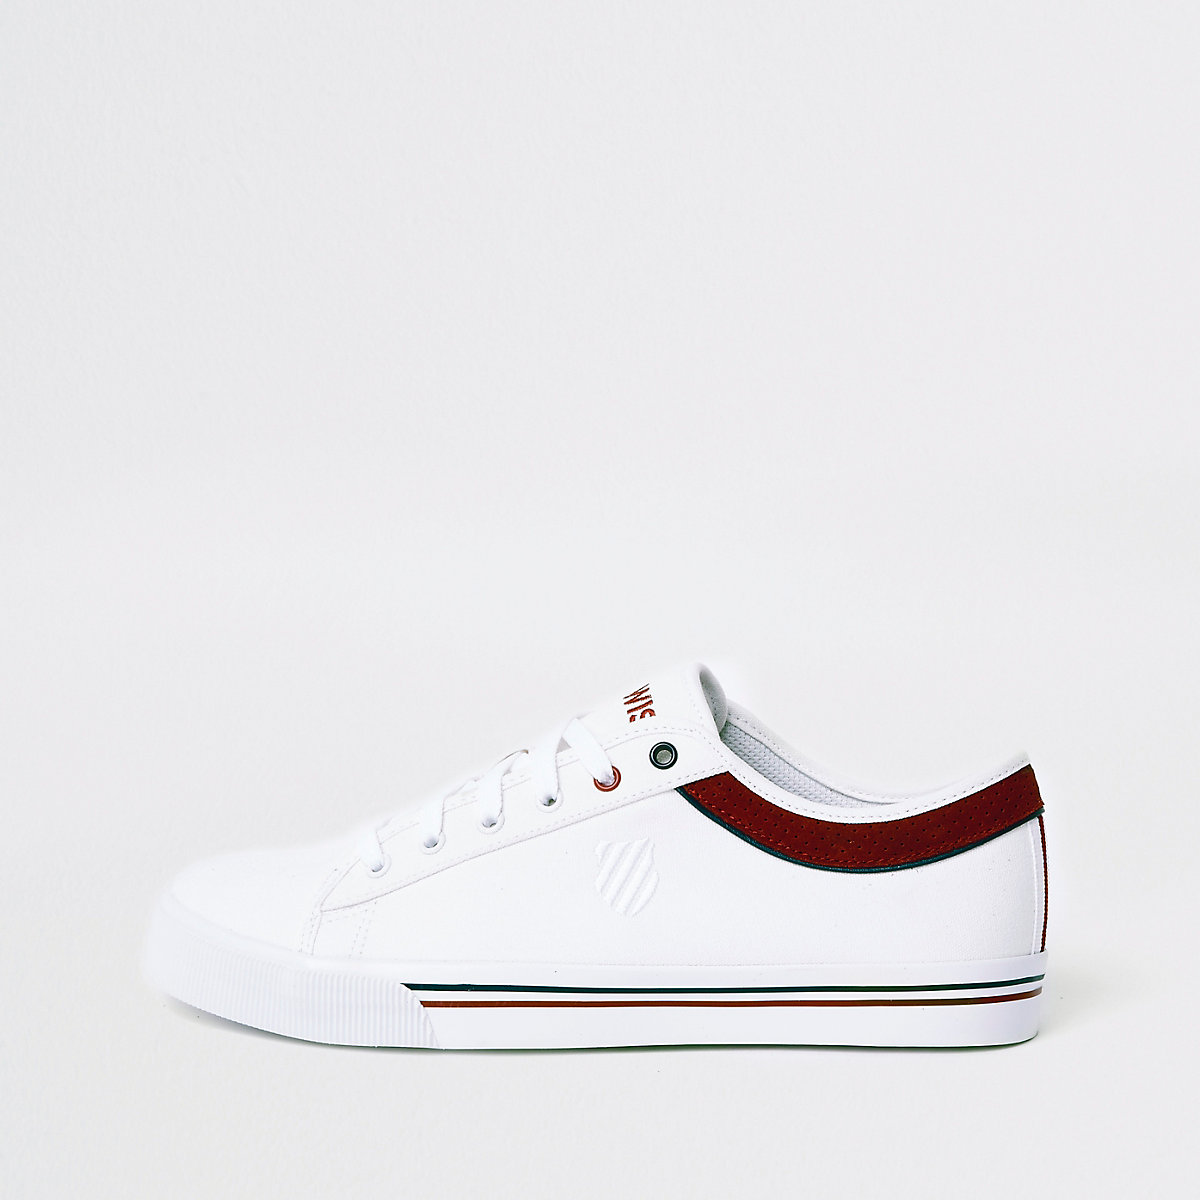 K-Swiss white low top canvas trainers